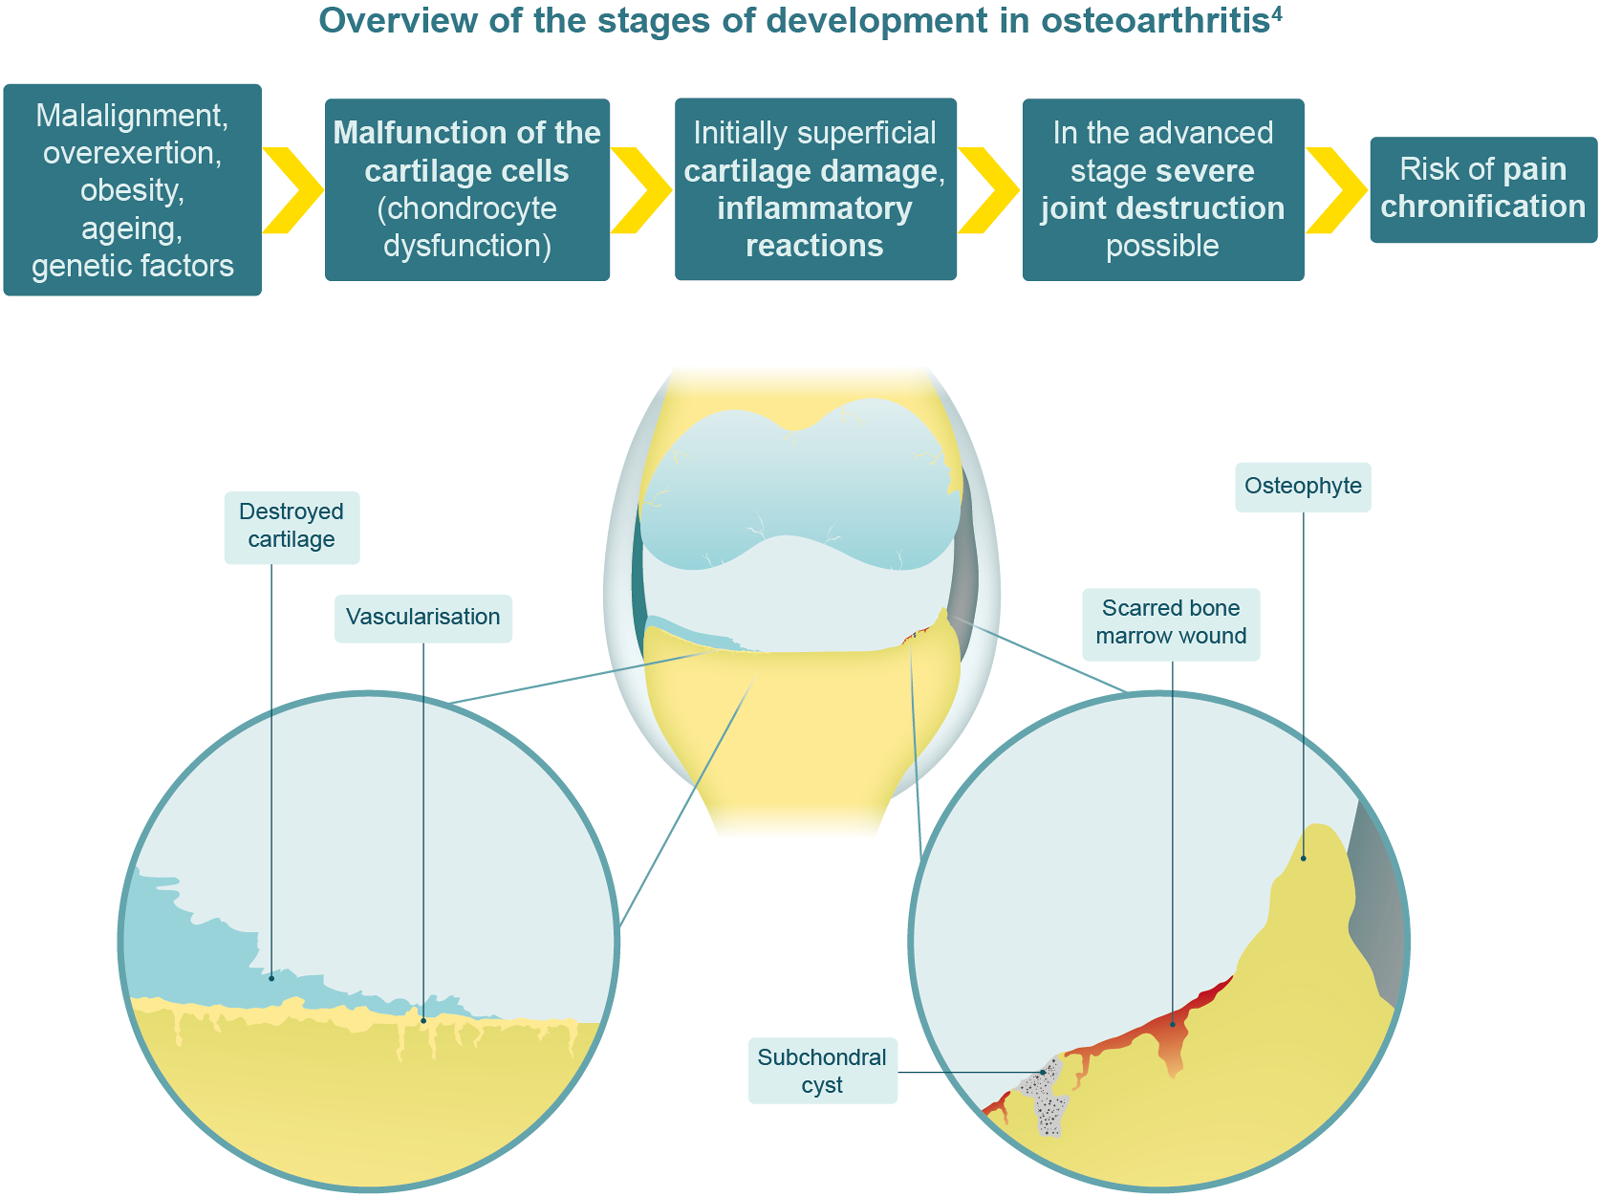 Overview of the stages of development in osteoarthritis